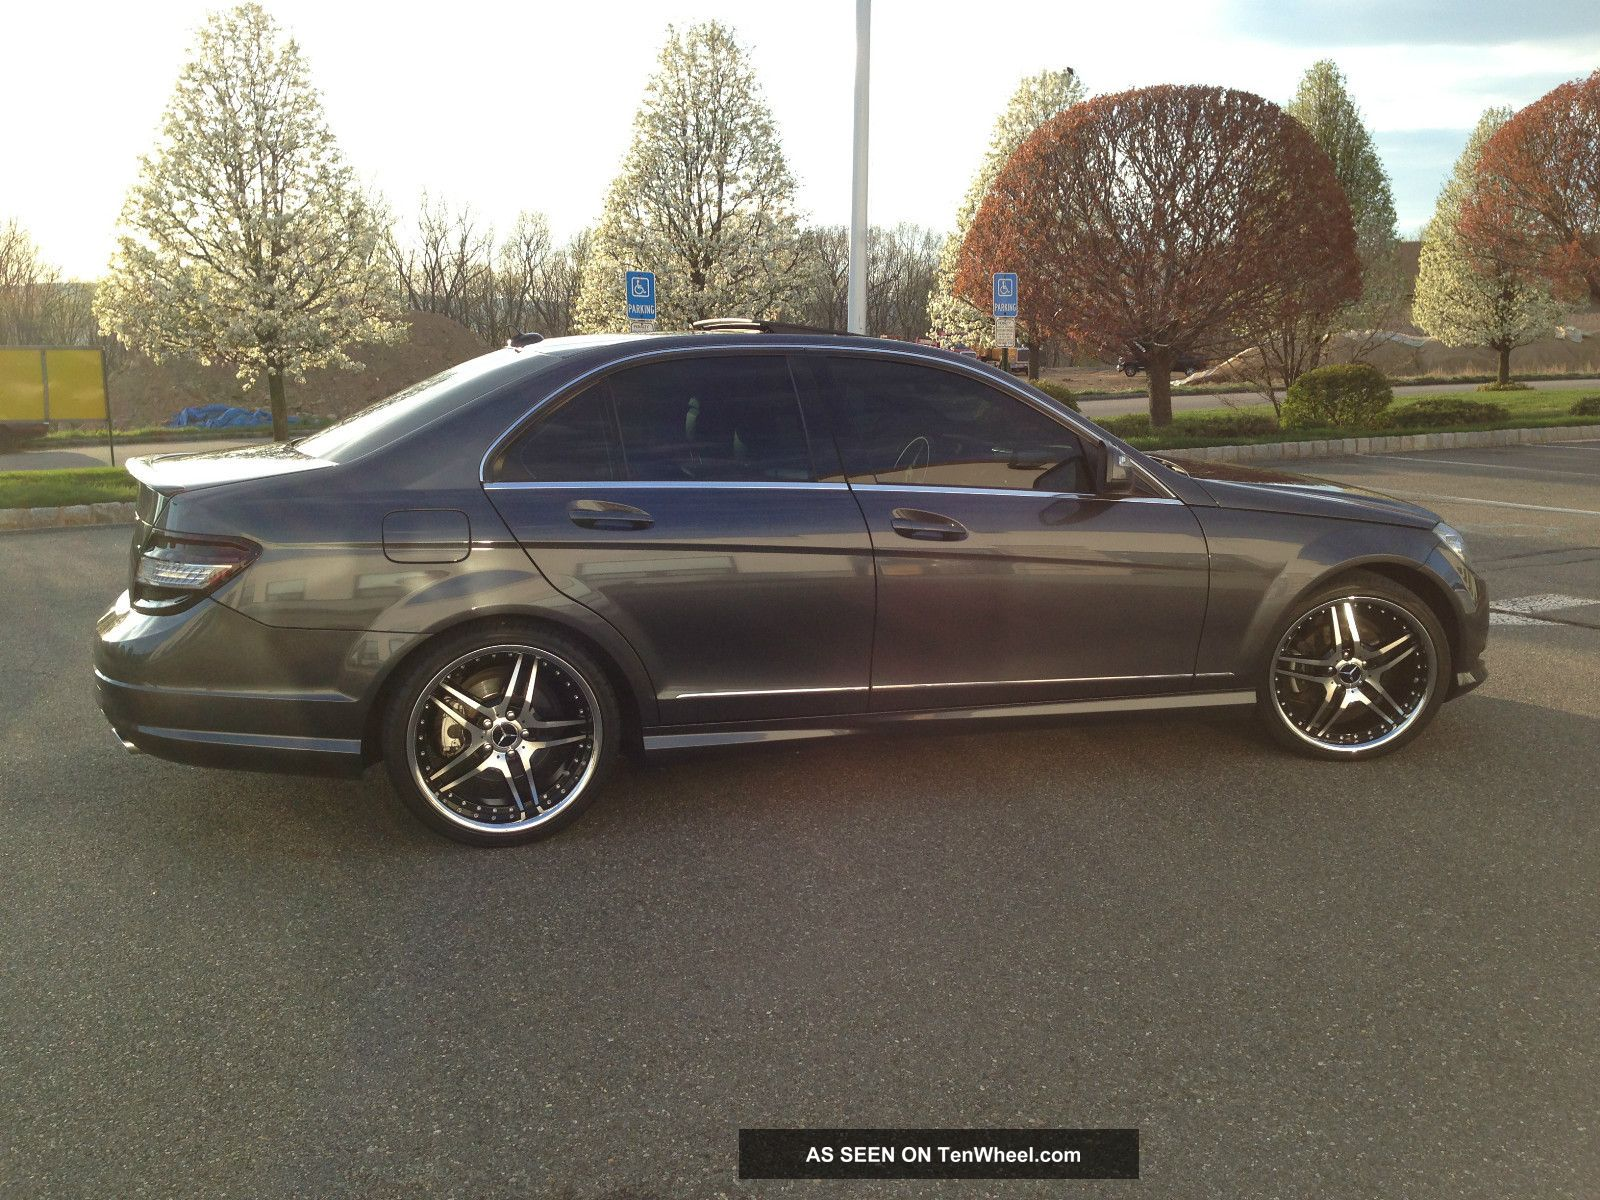 2008 mercedes c300 amg sport fully loaded. Black Bedroom Furniture Sets. Home Design Ideas